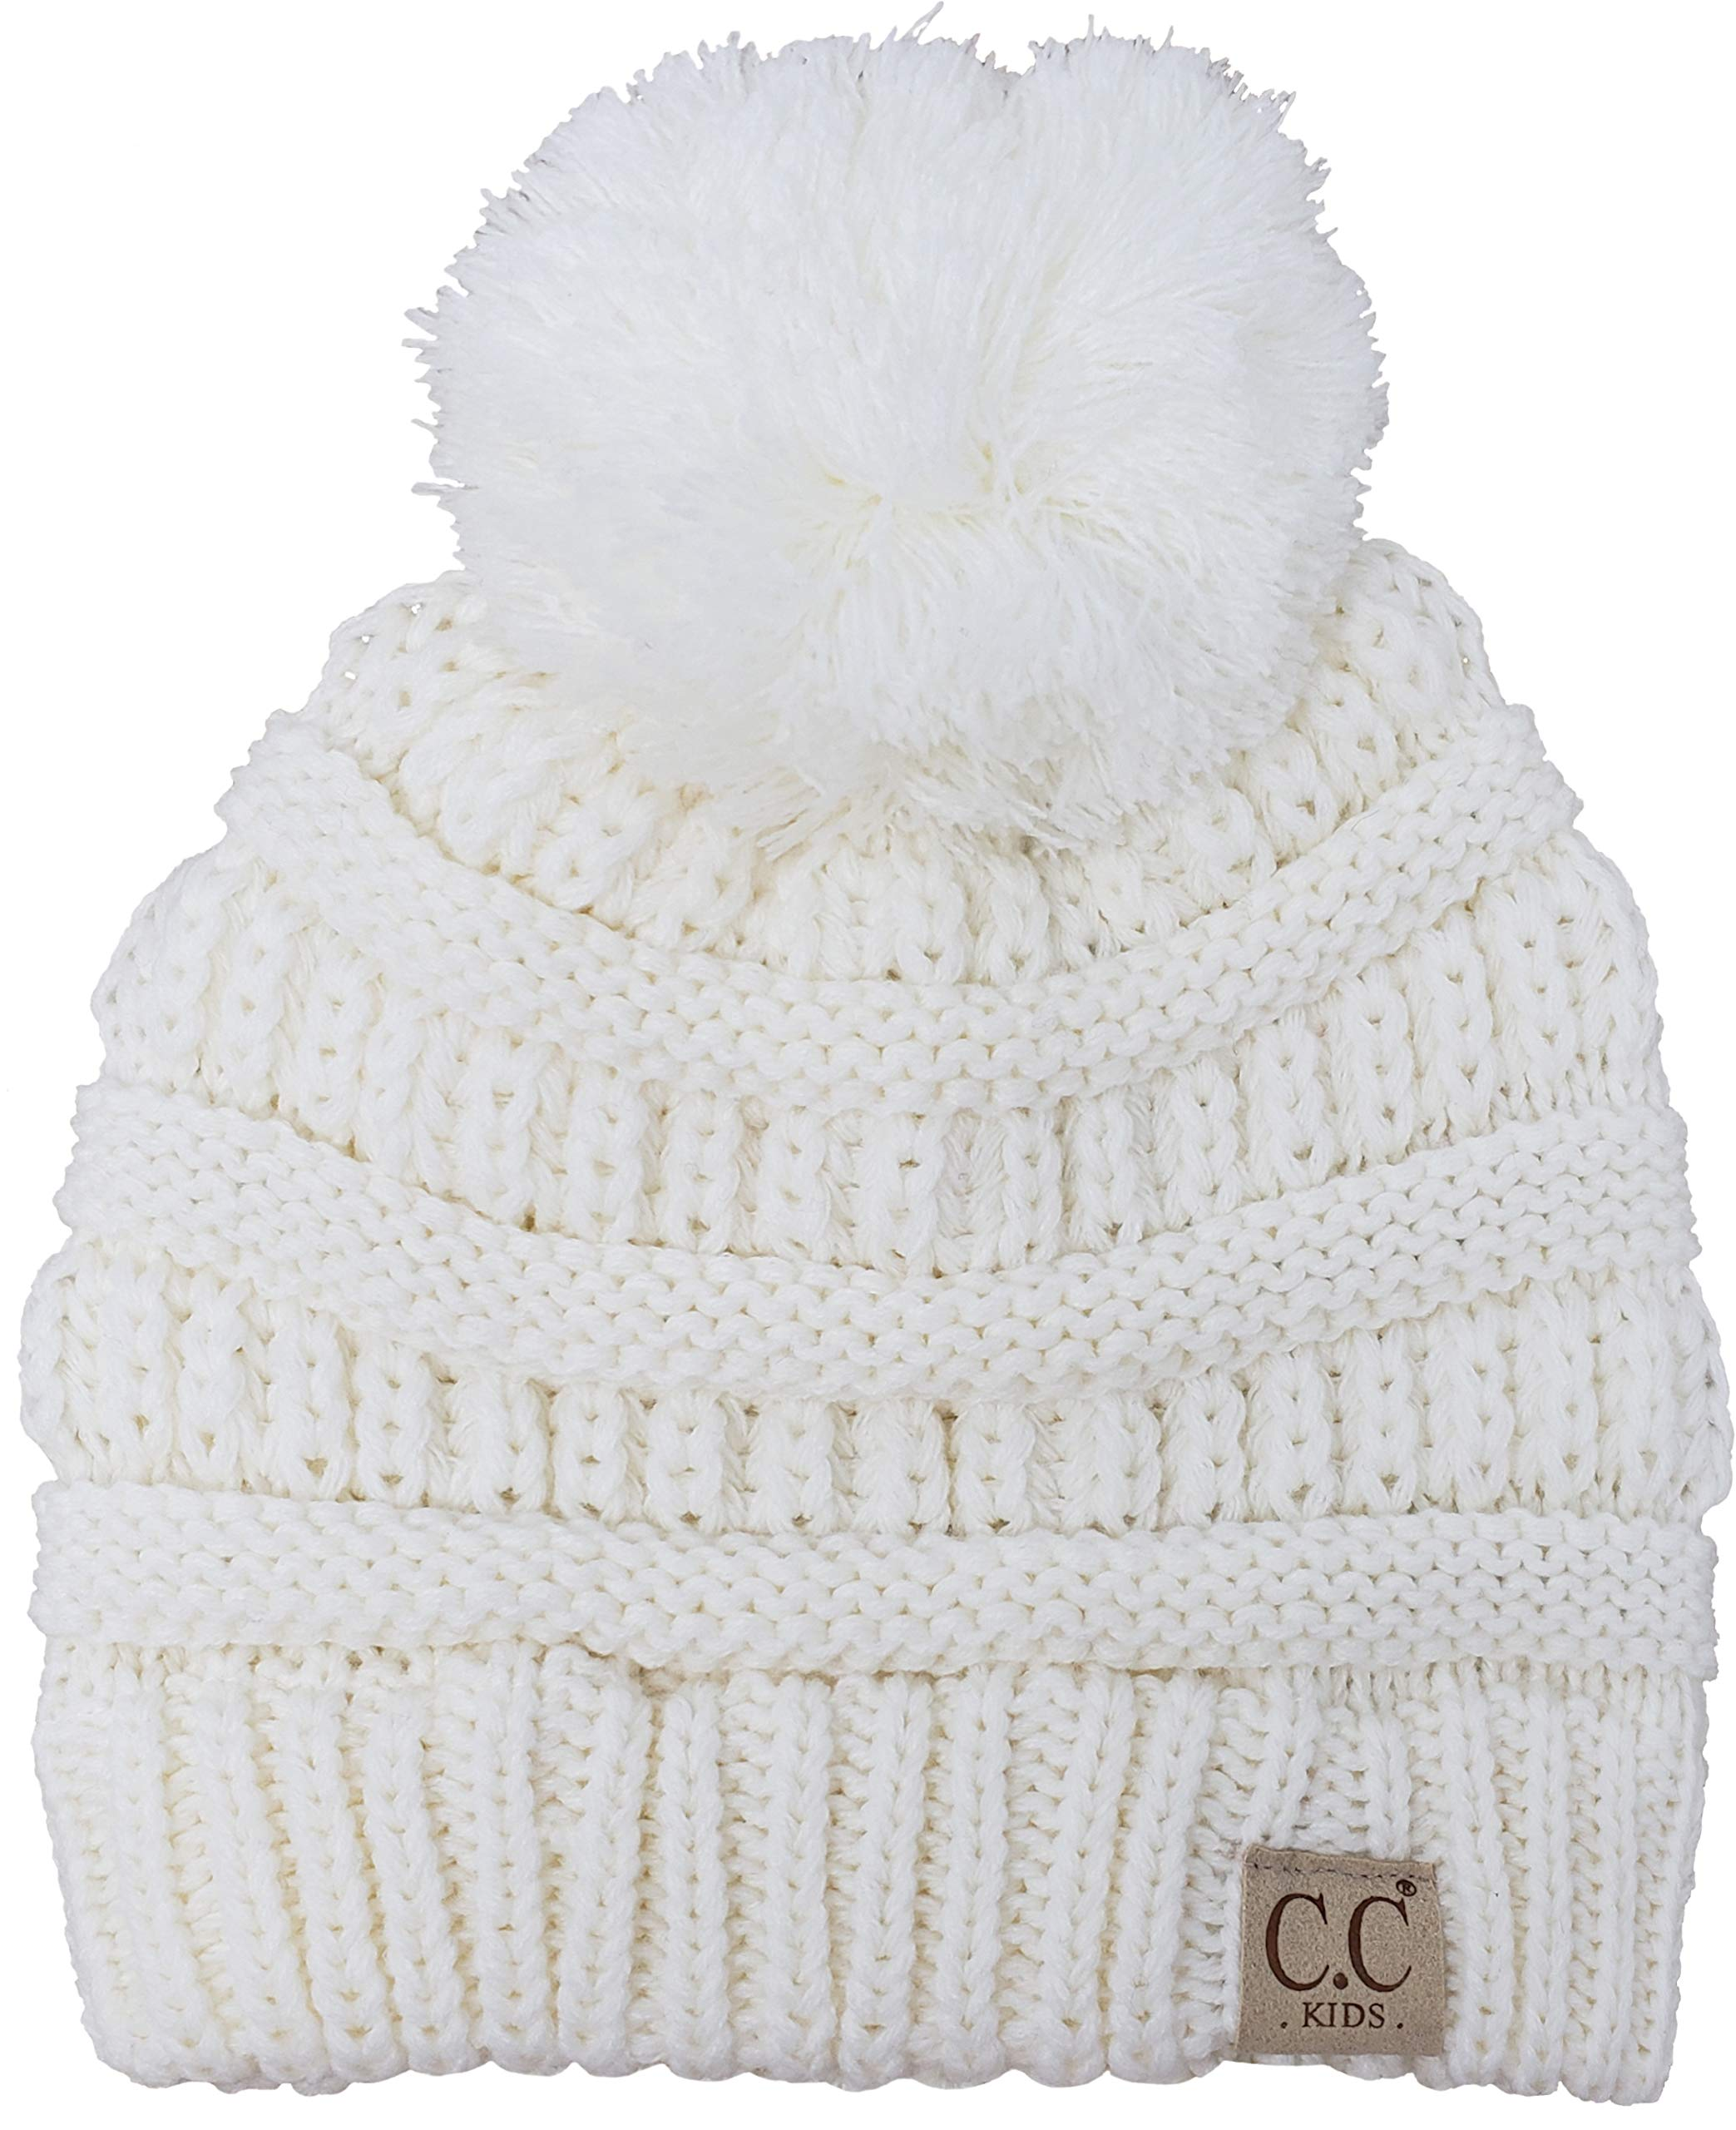 H-6847-25 Girls Winter Hat Warm Knit Slouchy Toddler Kids Pom Beanie - Ivory